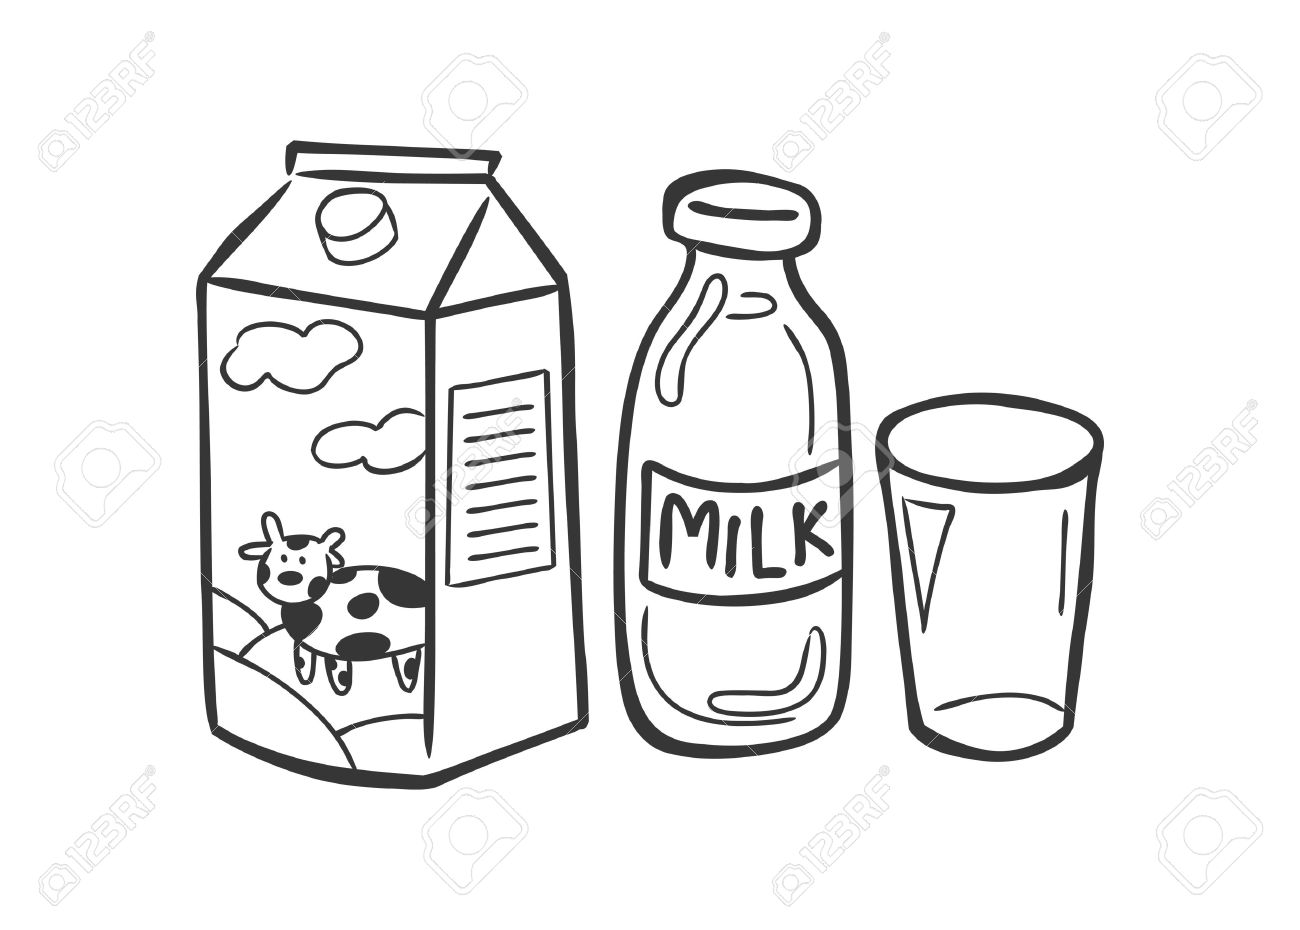 1300x930 Milk In Doodle Style Royalty Free Cliparts, Vectors, And Stock